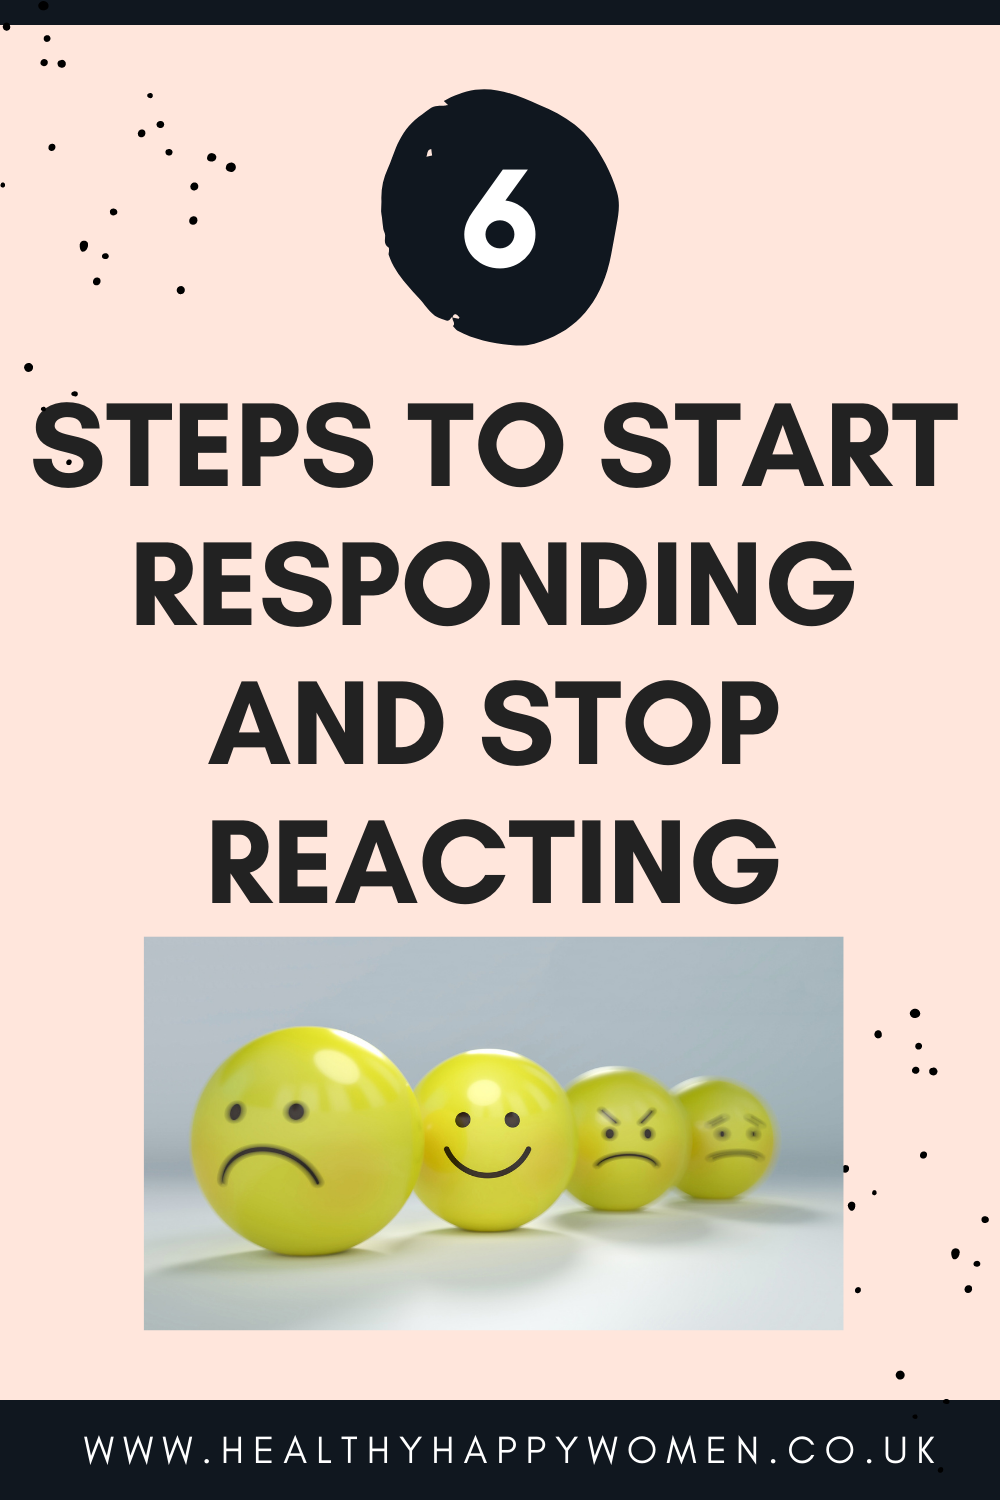 How to respond and stop reacting